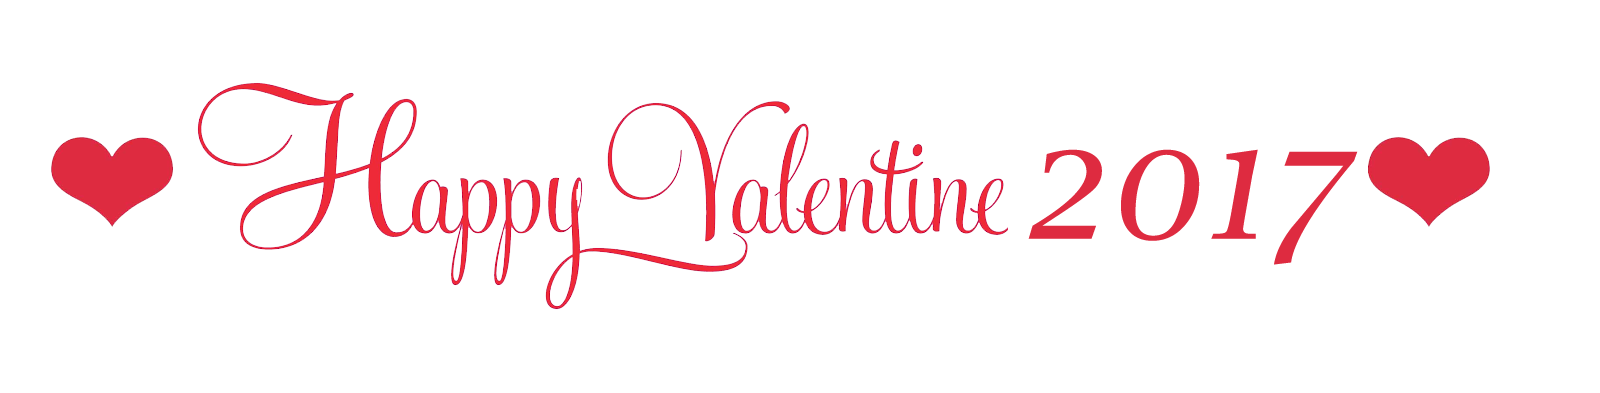 Happy Valentine 2017 Images, Wallpapers, Messages, Gifts, Ideas